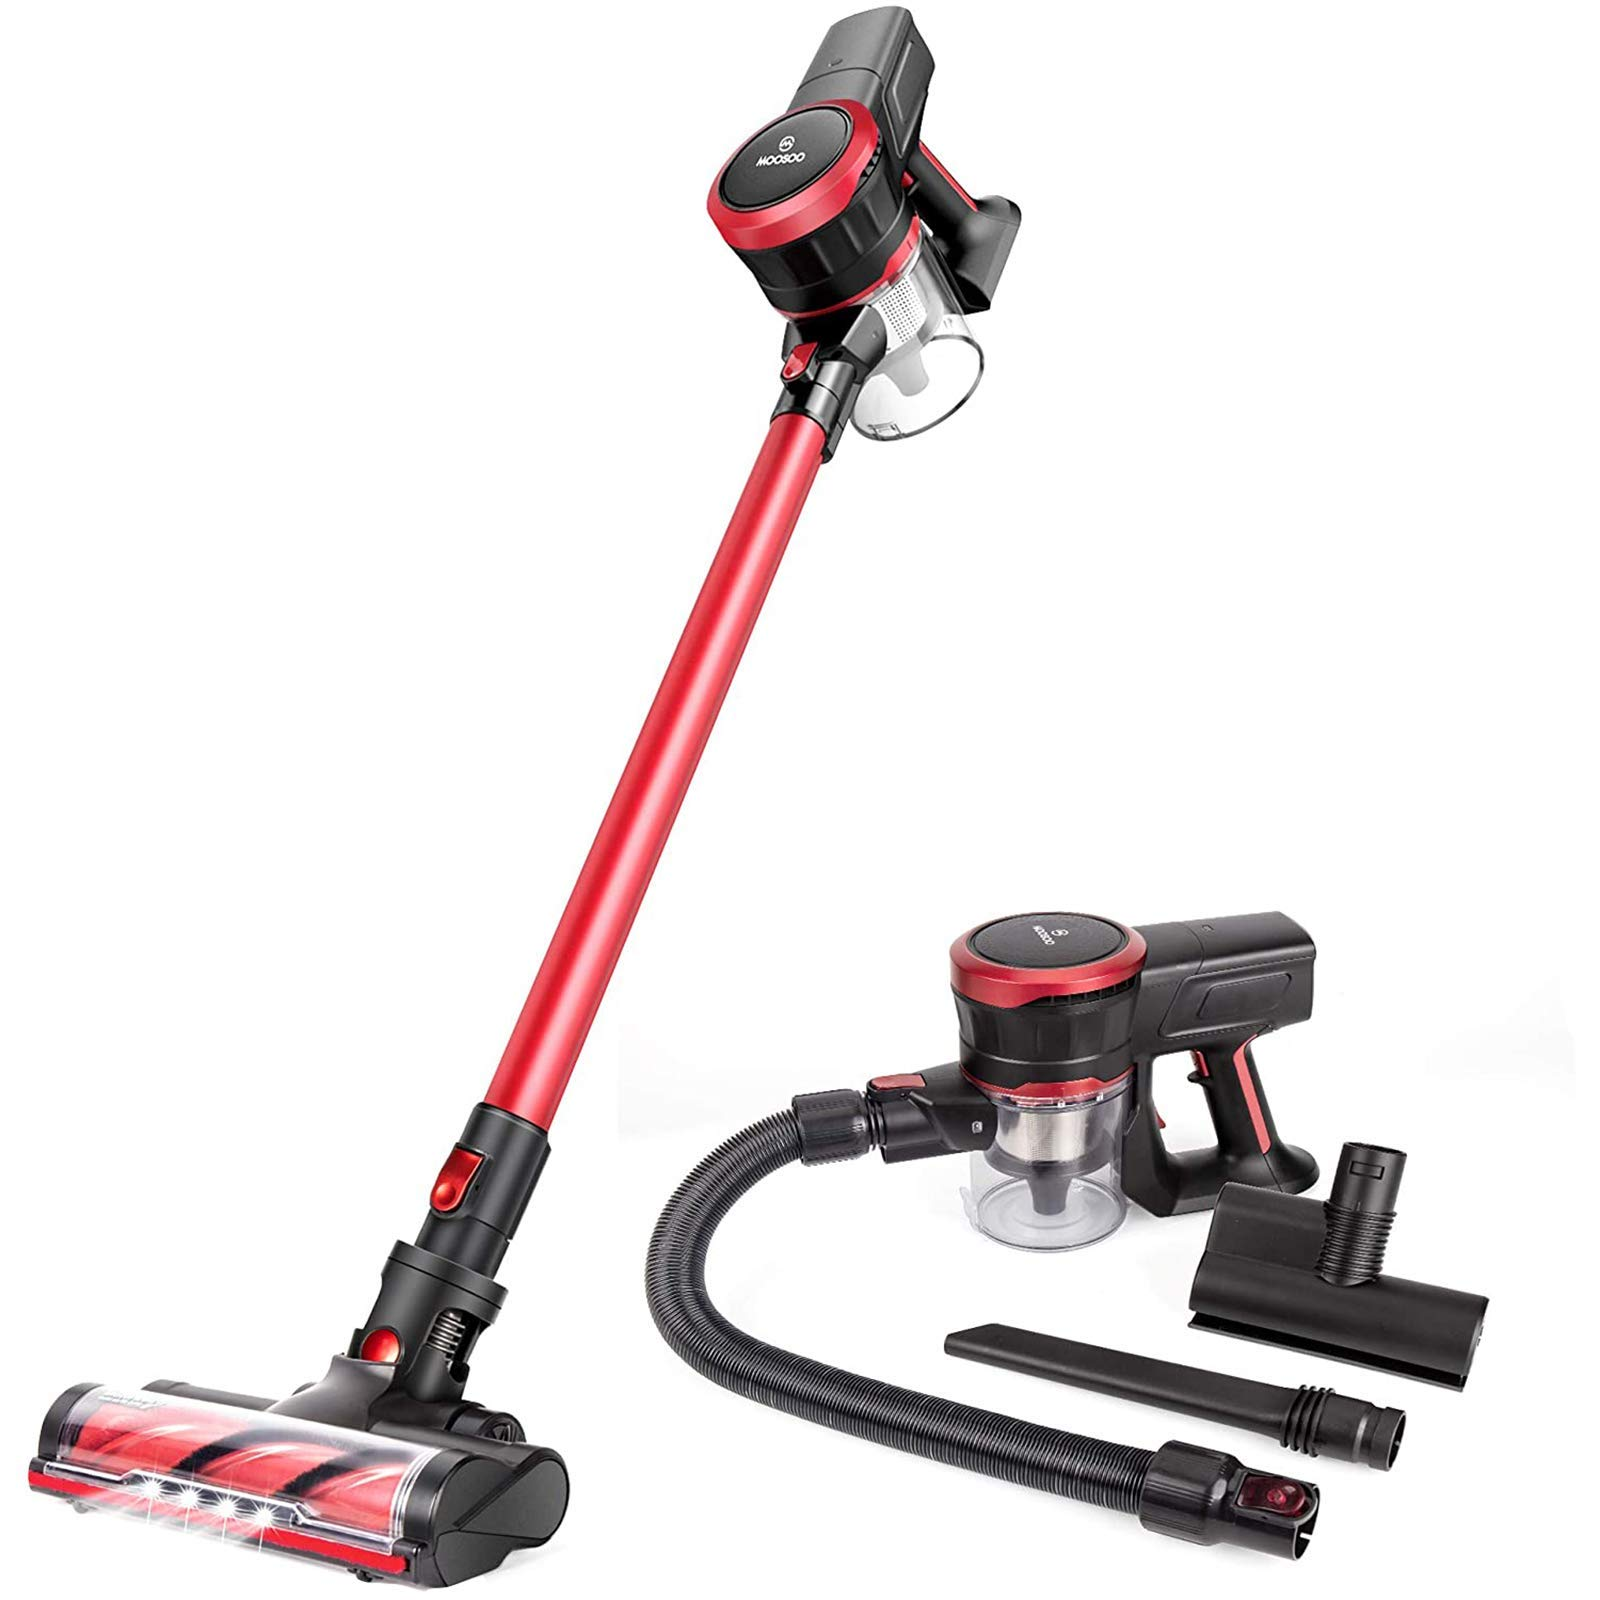 MOOSOO Cordless Vacuum Cleaner 23Kpa Strong Suction 2 in 1 Stick Vacuum Ultra-Quiet Handheld Vacuum with Brushless Motor Multi-attachments (Model: K17)